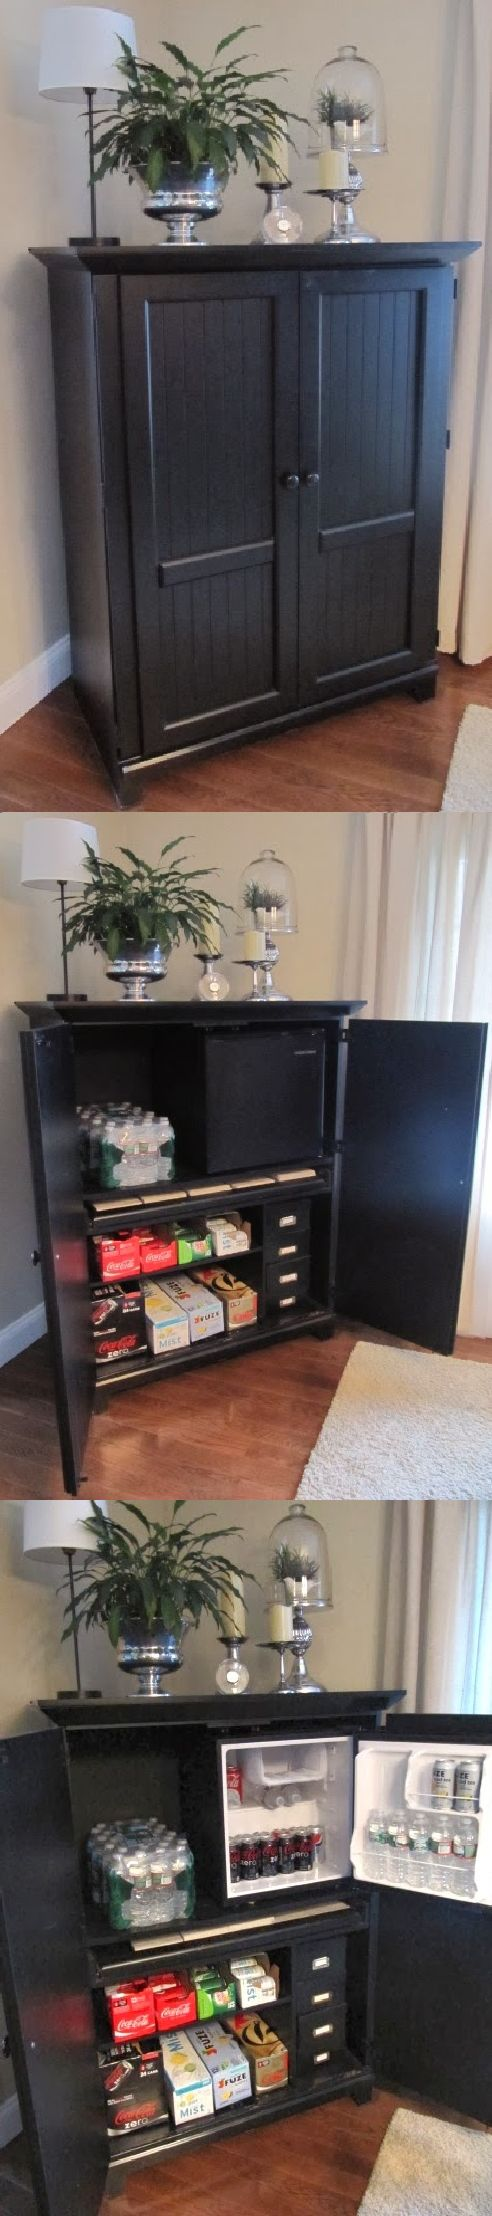 Take an armoire or computer cabinet and turn it into a beverage center! Place a mini fridge inside to keep things cold and use the shelves for storing the cases of pop, water, beer, or whatever your drink of choice is. You can even use the pull out key board tray to hold napkins! Use in your dining room, family room, basement, or even your outdoor kitchen!